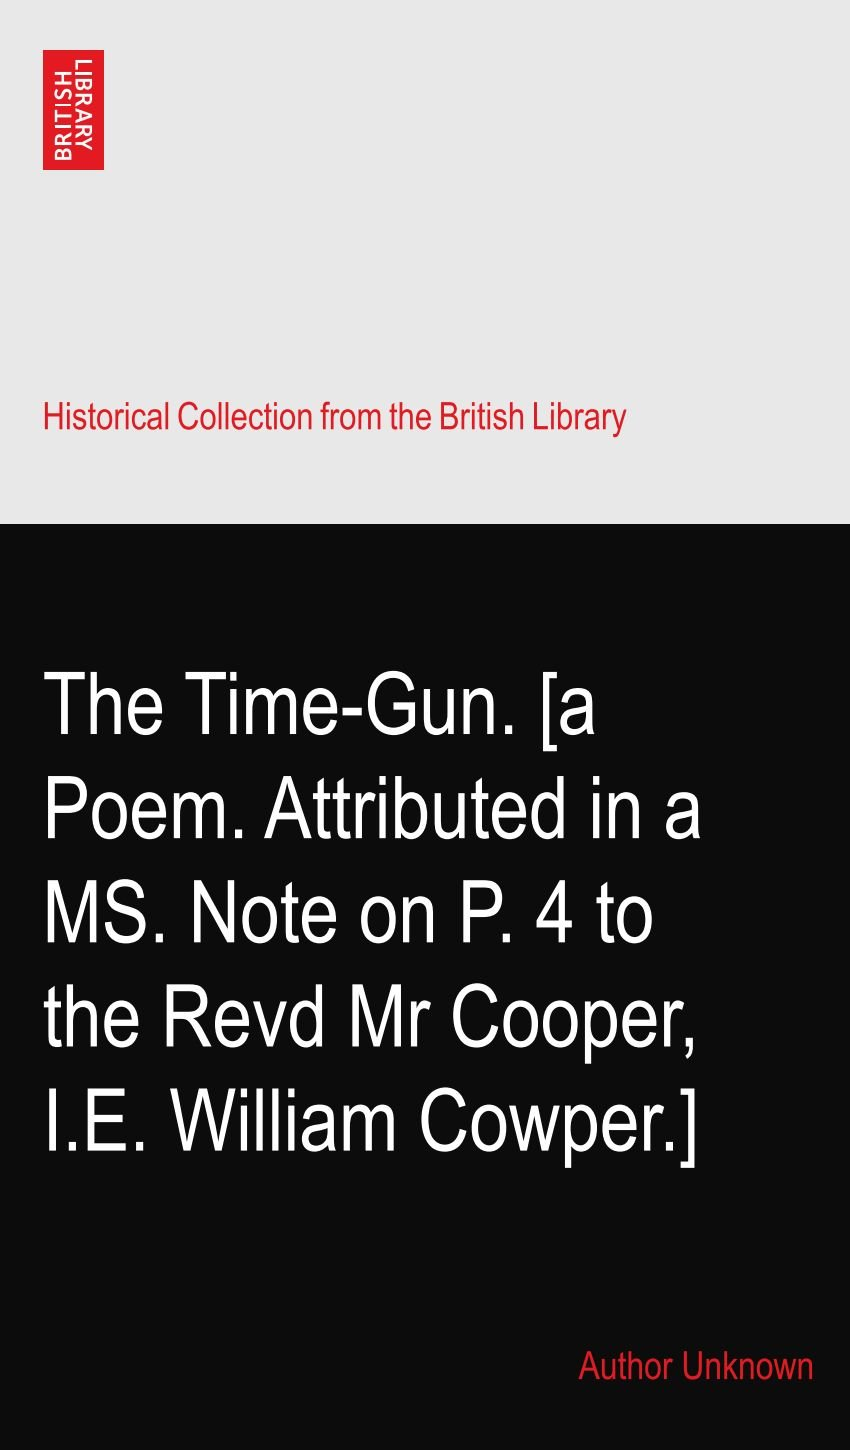 Read Online The Time-Gun. [a Poem. Attributed in a MS. Note on P. 4 to the Revd Mr Cooper,? I.E. William Cowper.] pdf epub